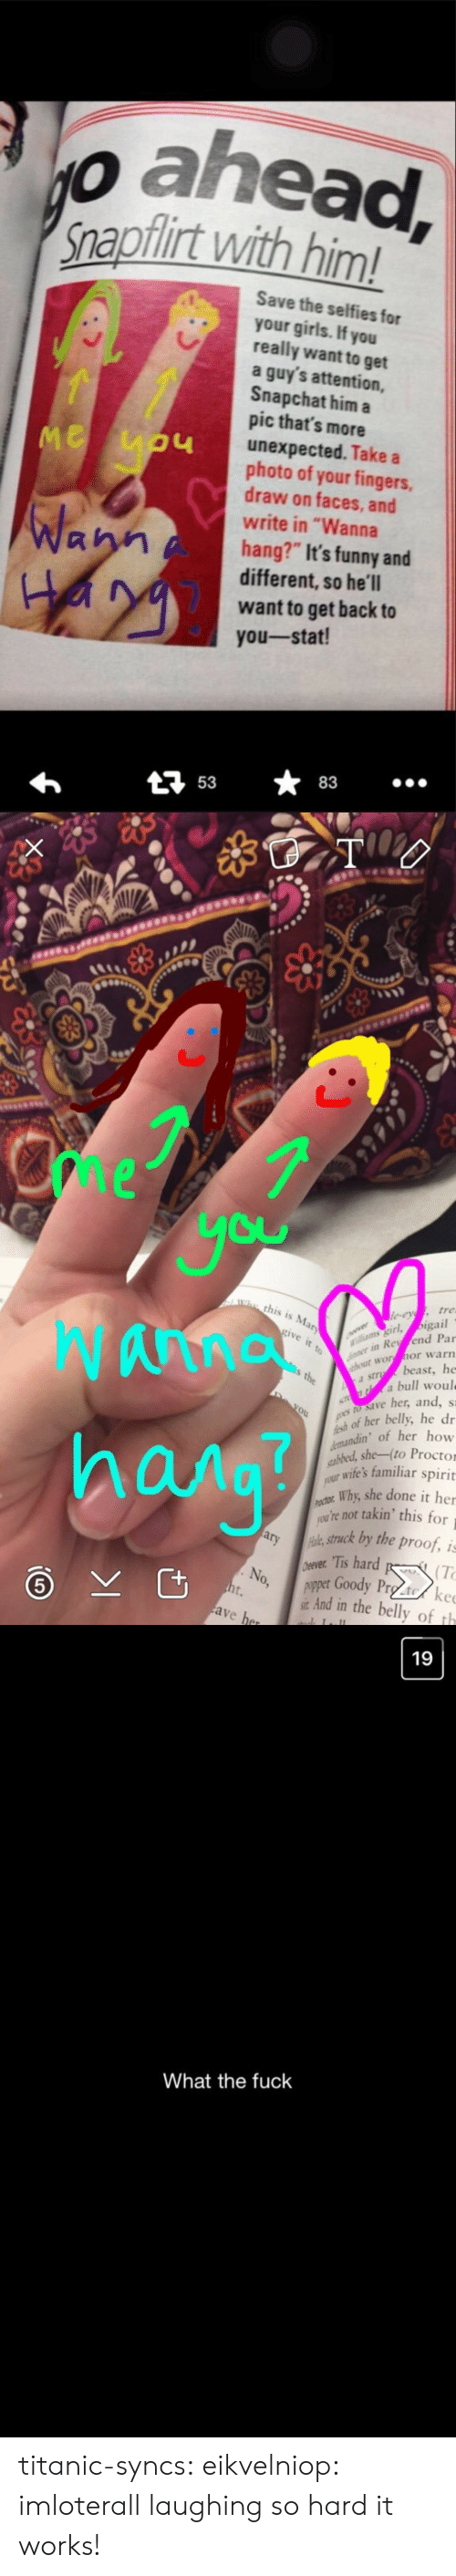 """Proctor: o ahead  napflirt with him!  Save the selfies for  your girls. If you  really want to get  a guy's attention,  Snapchat him a  pic that's more  unexpected. Take a  photo of your fingers,  draw on faces, and  write in """"Wanna  hang?"""" It's funny and  different, so he'll  want to get back to  you-stat!  LI  Wa  At 5383   me  Cu  th  , tre  igail  in Rey fend Par  ut worhor warn  Wanna  hana  ms girl,  It  beast, he  a bull woul  a s  save her, and, s  h of her belly, he dr  ndin of her how  she-(to Proctor  ur wife's familiar spirit  Why, she done it her  arykstruck by the proof, is  No, pet Goody Prg to/ ke  ou're not takin' this for  : Tis hard K.  (T  And in the belly of th   19  What the fuck titanic-syncs:  eikvelniop:  imloterall laughing so hard  it works!"""